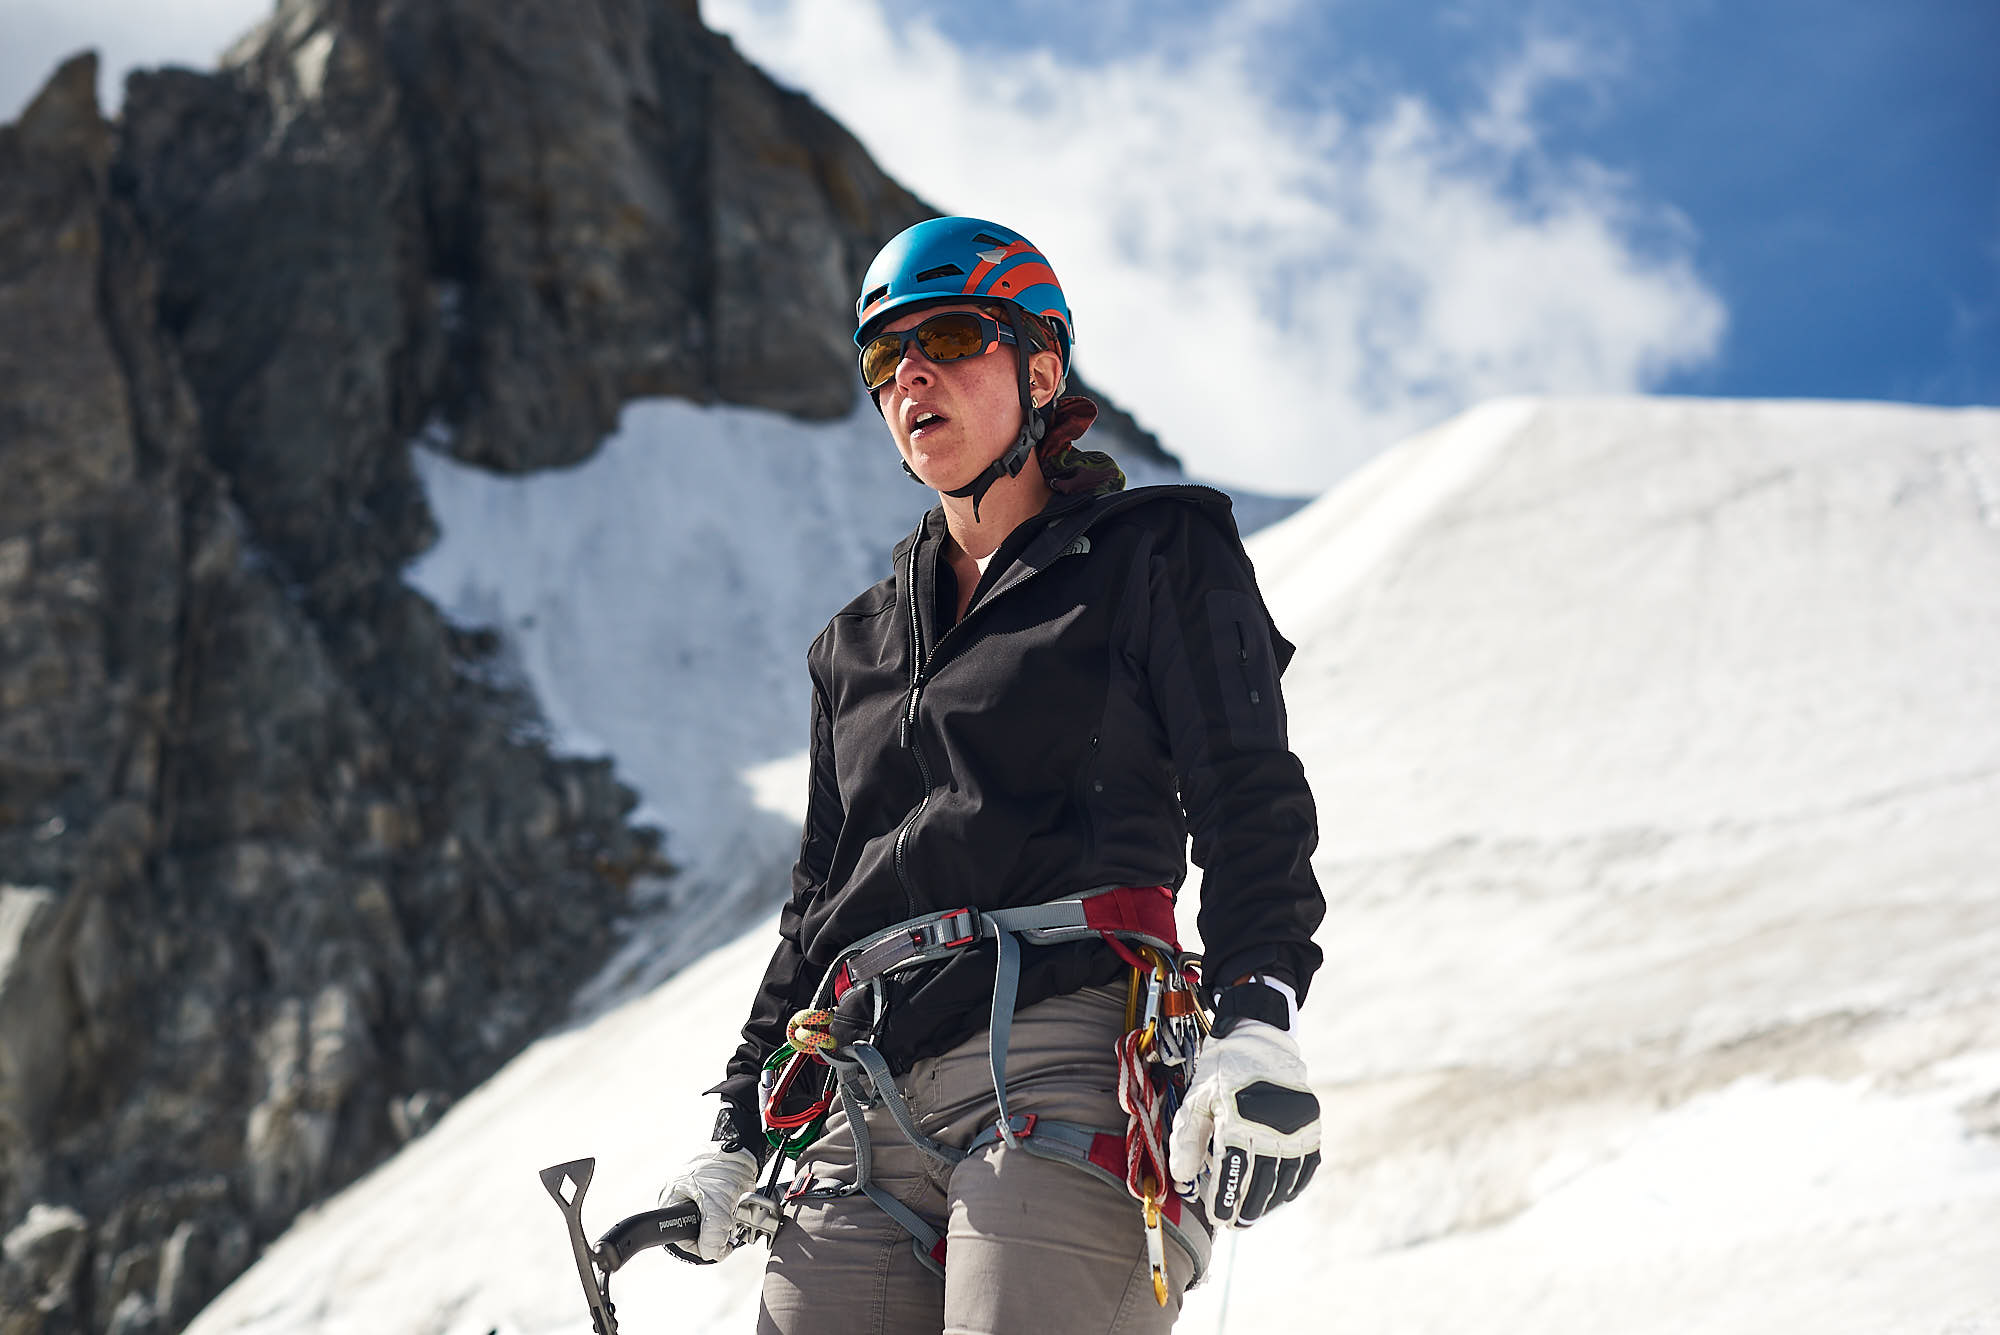 Female alpinist on Italian side of Mont Blanc, holding an ice axe